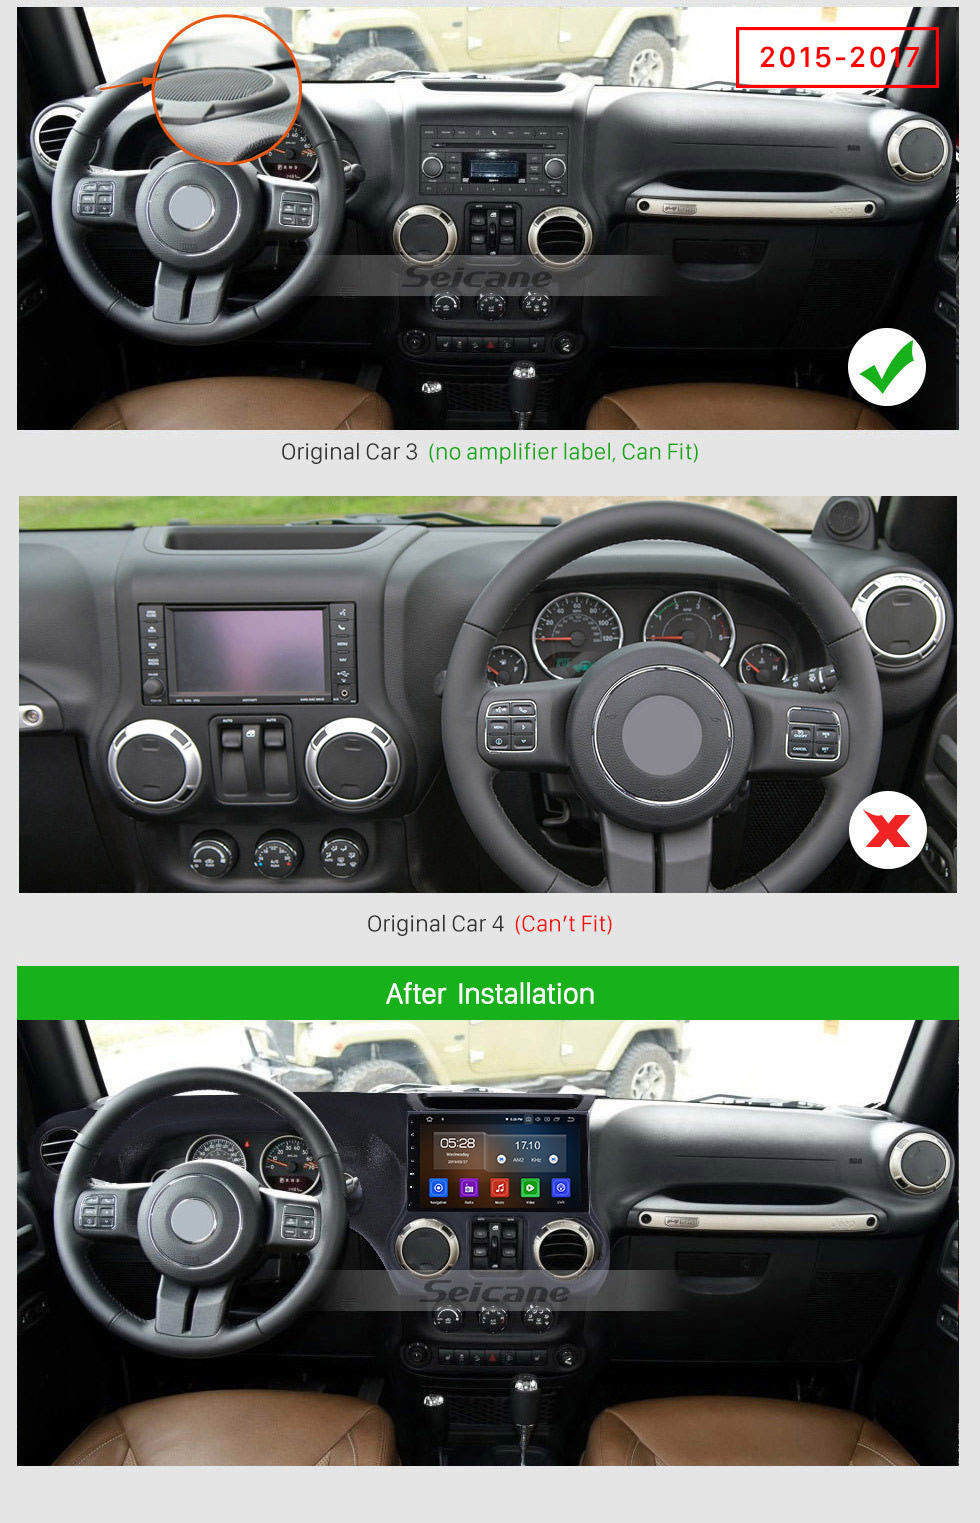 Seicane Android 10.0 10.1 Inch Touchscreen Radio For 2011-2017 JEEP Wrangler Bluetooth Music GPS Navigation Built-in Carplay Support DAB+ OBDII USB TPMS WiFi Steering Wheel Control